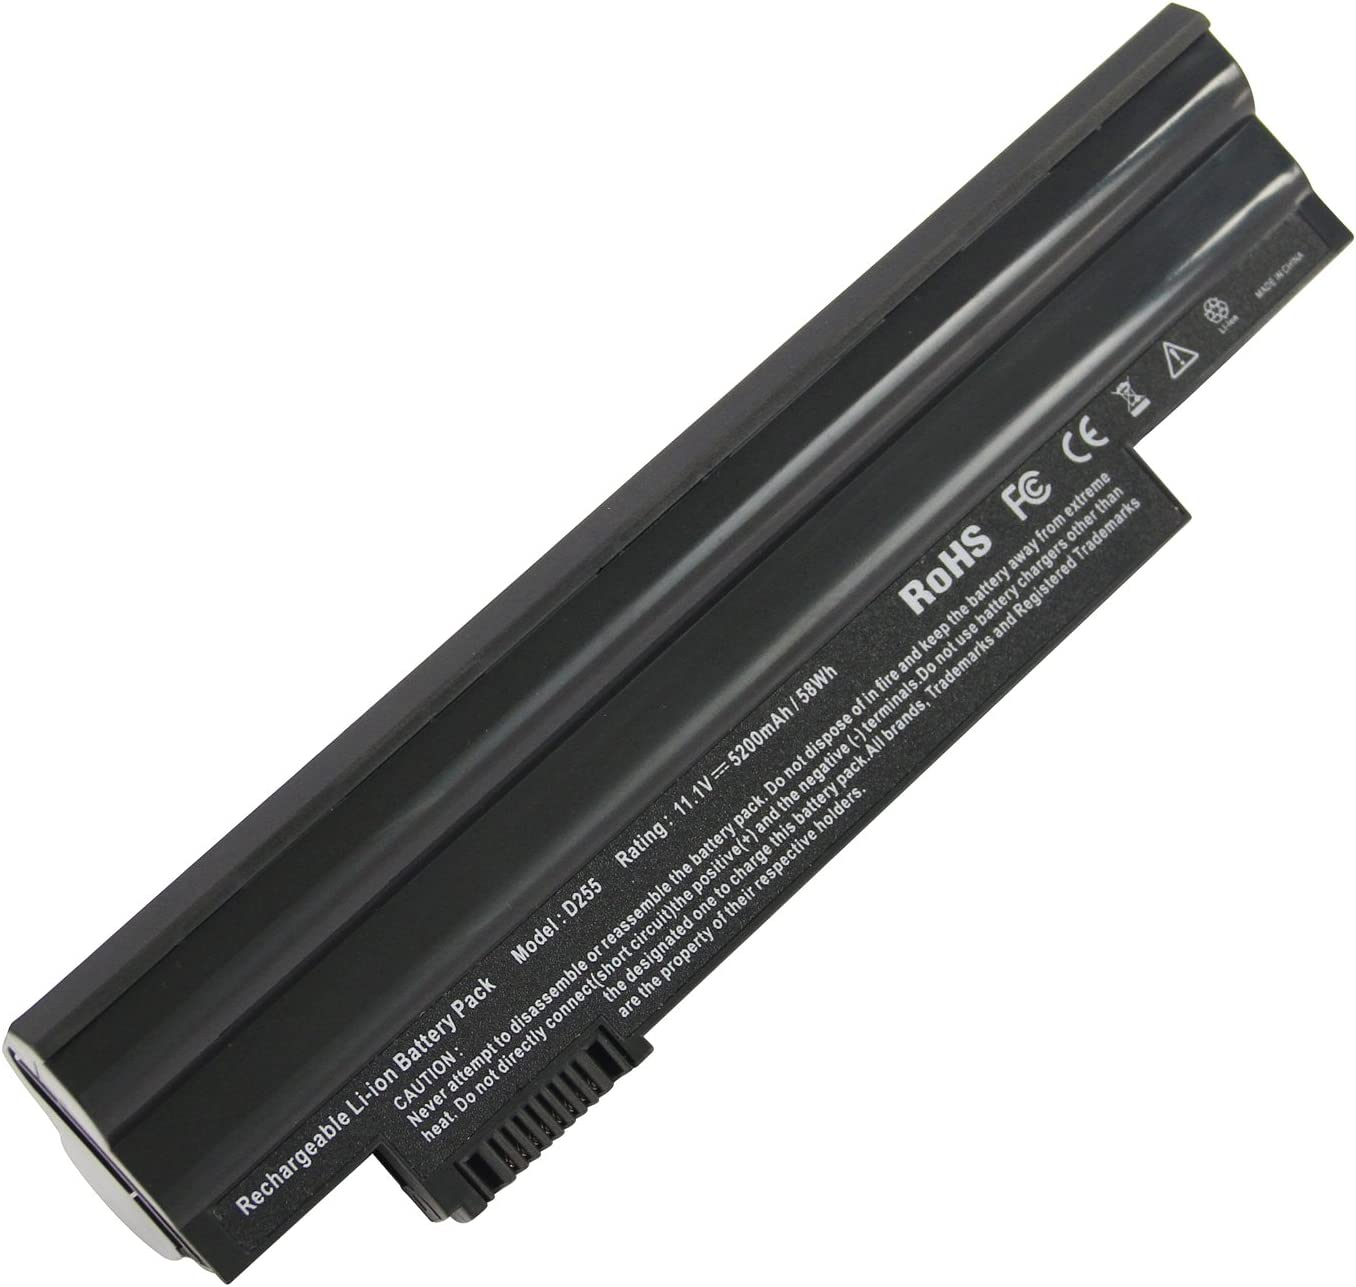 Futurebatt Laptop Battery for Acer Aspire One D255 D257 D260 522 722 Al10a31 Al10b31 Al10g31 Gateway LT23 LT27 LT28 Series LT2304c LT2702R LT2712u LT2704u LT2802u LT2805u